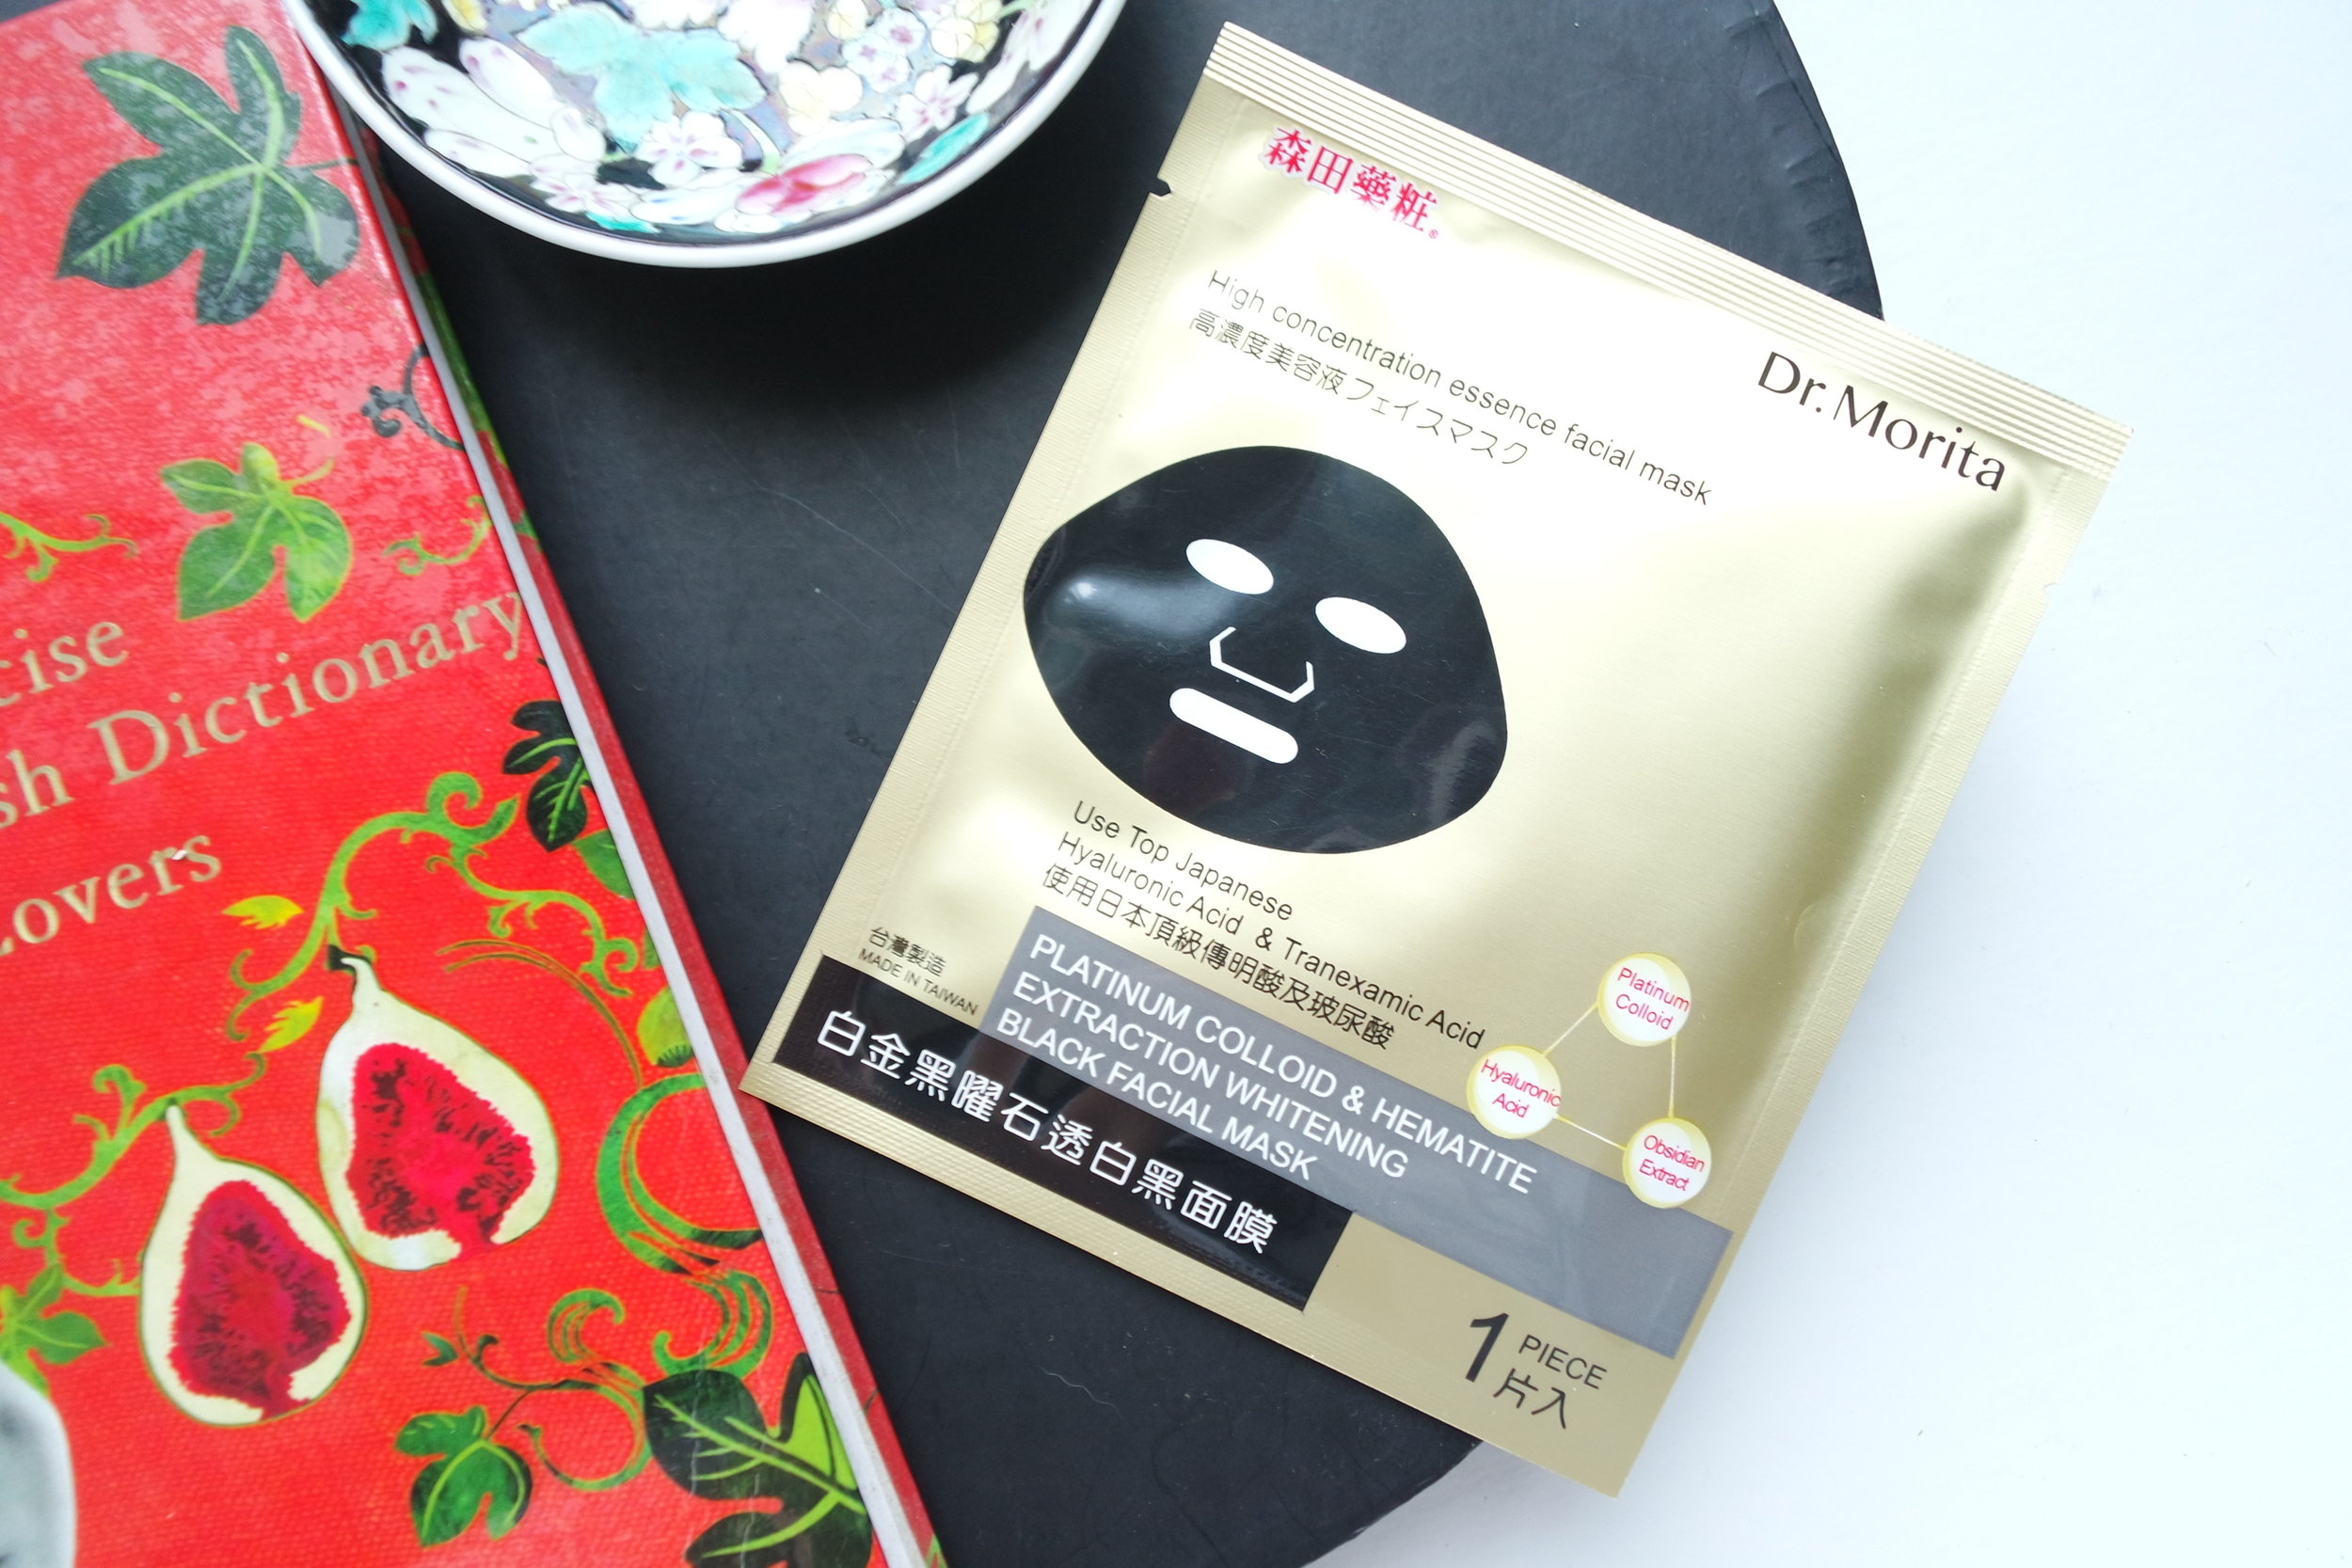 These award-winning Taiwanese sheet masks are just P74! — Project Vanity